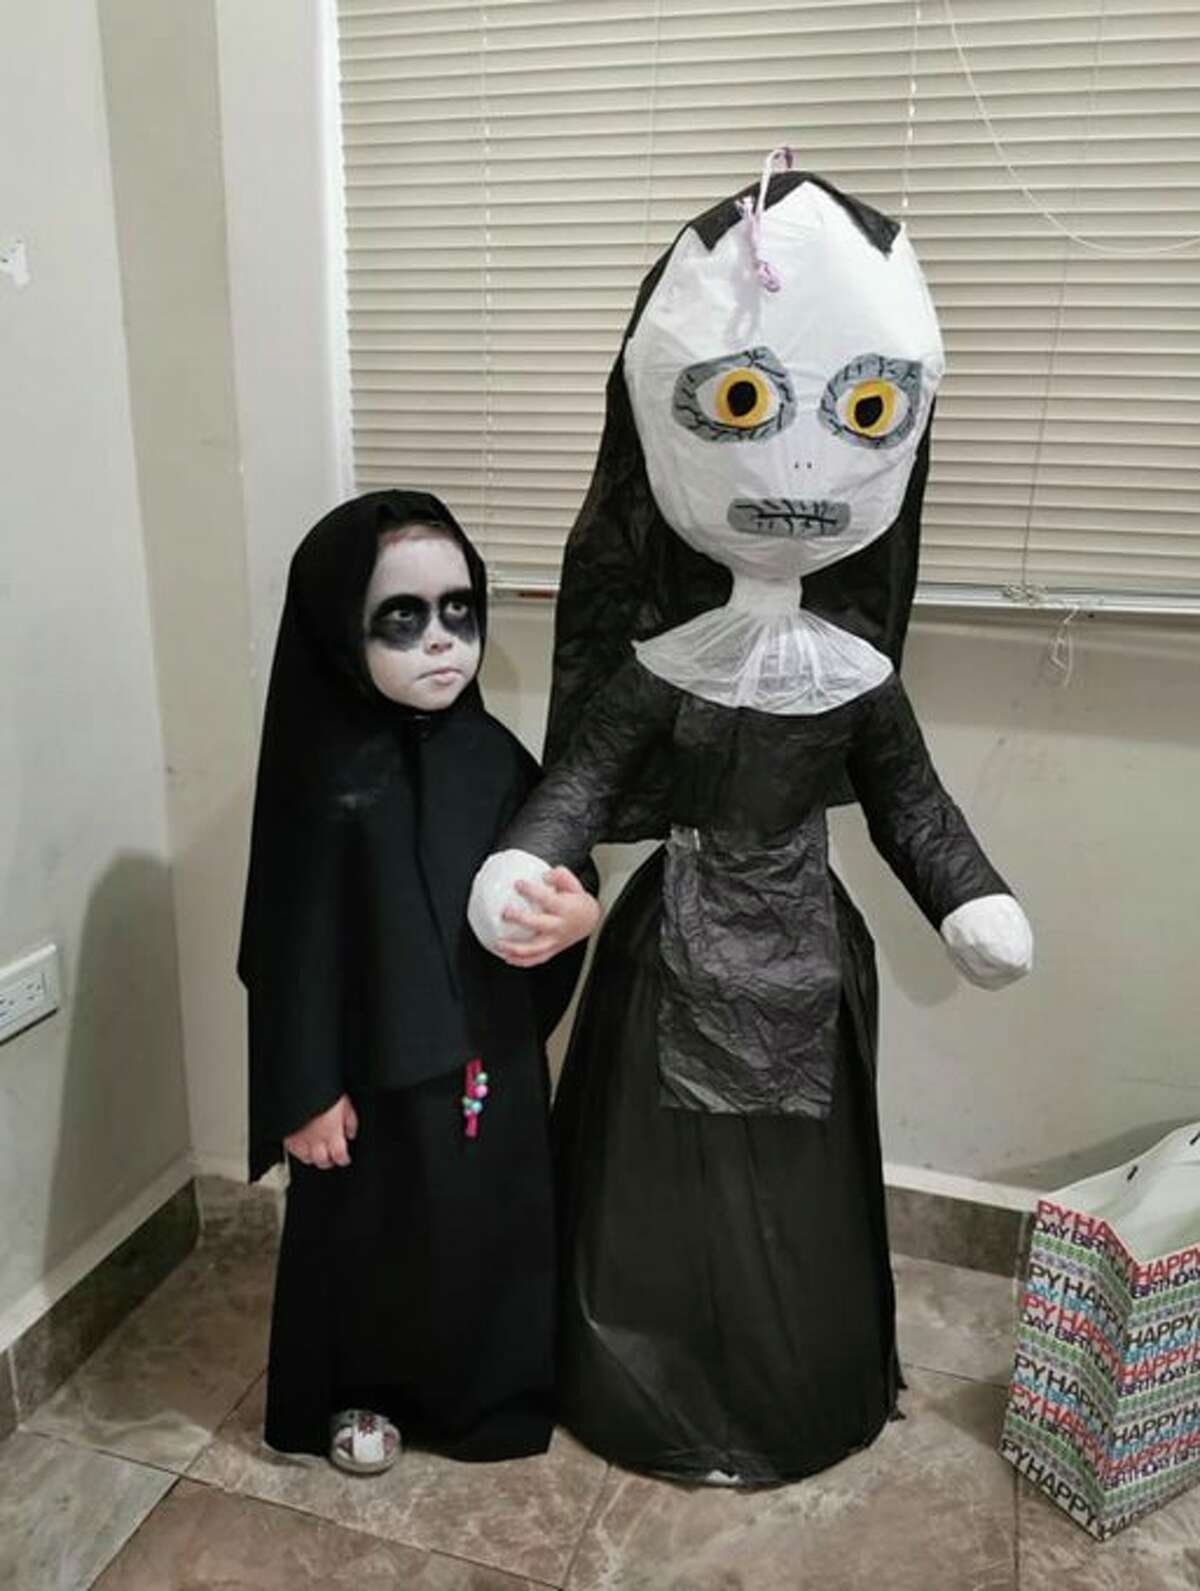 """Little Lucia celebrated her 3rd birthday in Monterrey, Mexico dressed as a tiny version of the demonic nun from """"The Nun"""" on Monday, her cousin Andrea Villarreal, a San Antonio resident, told mySA.com. Villarreal tweeted photos of the little girl in what has become an insanely popular post that even Jordan Peele noticed."""